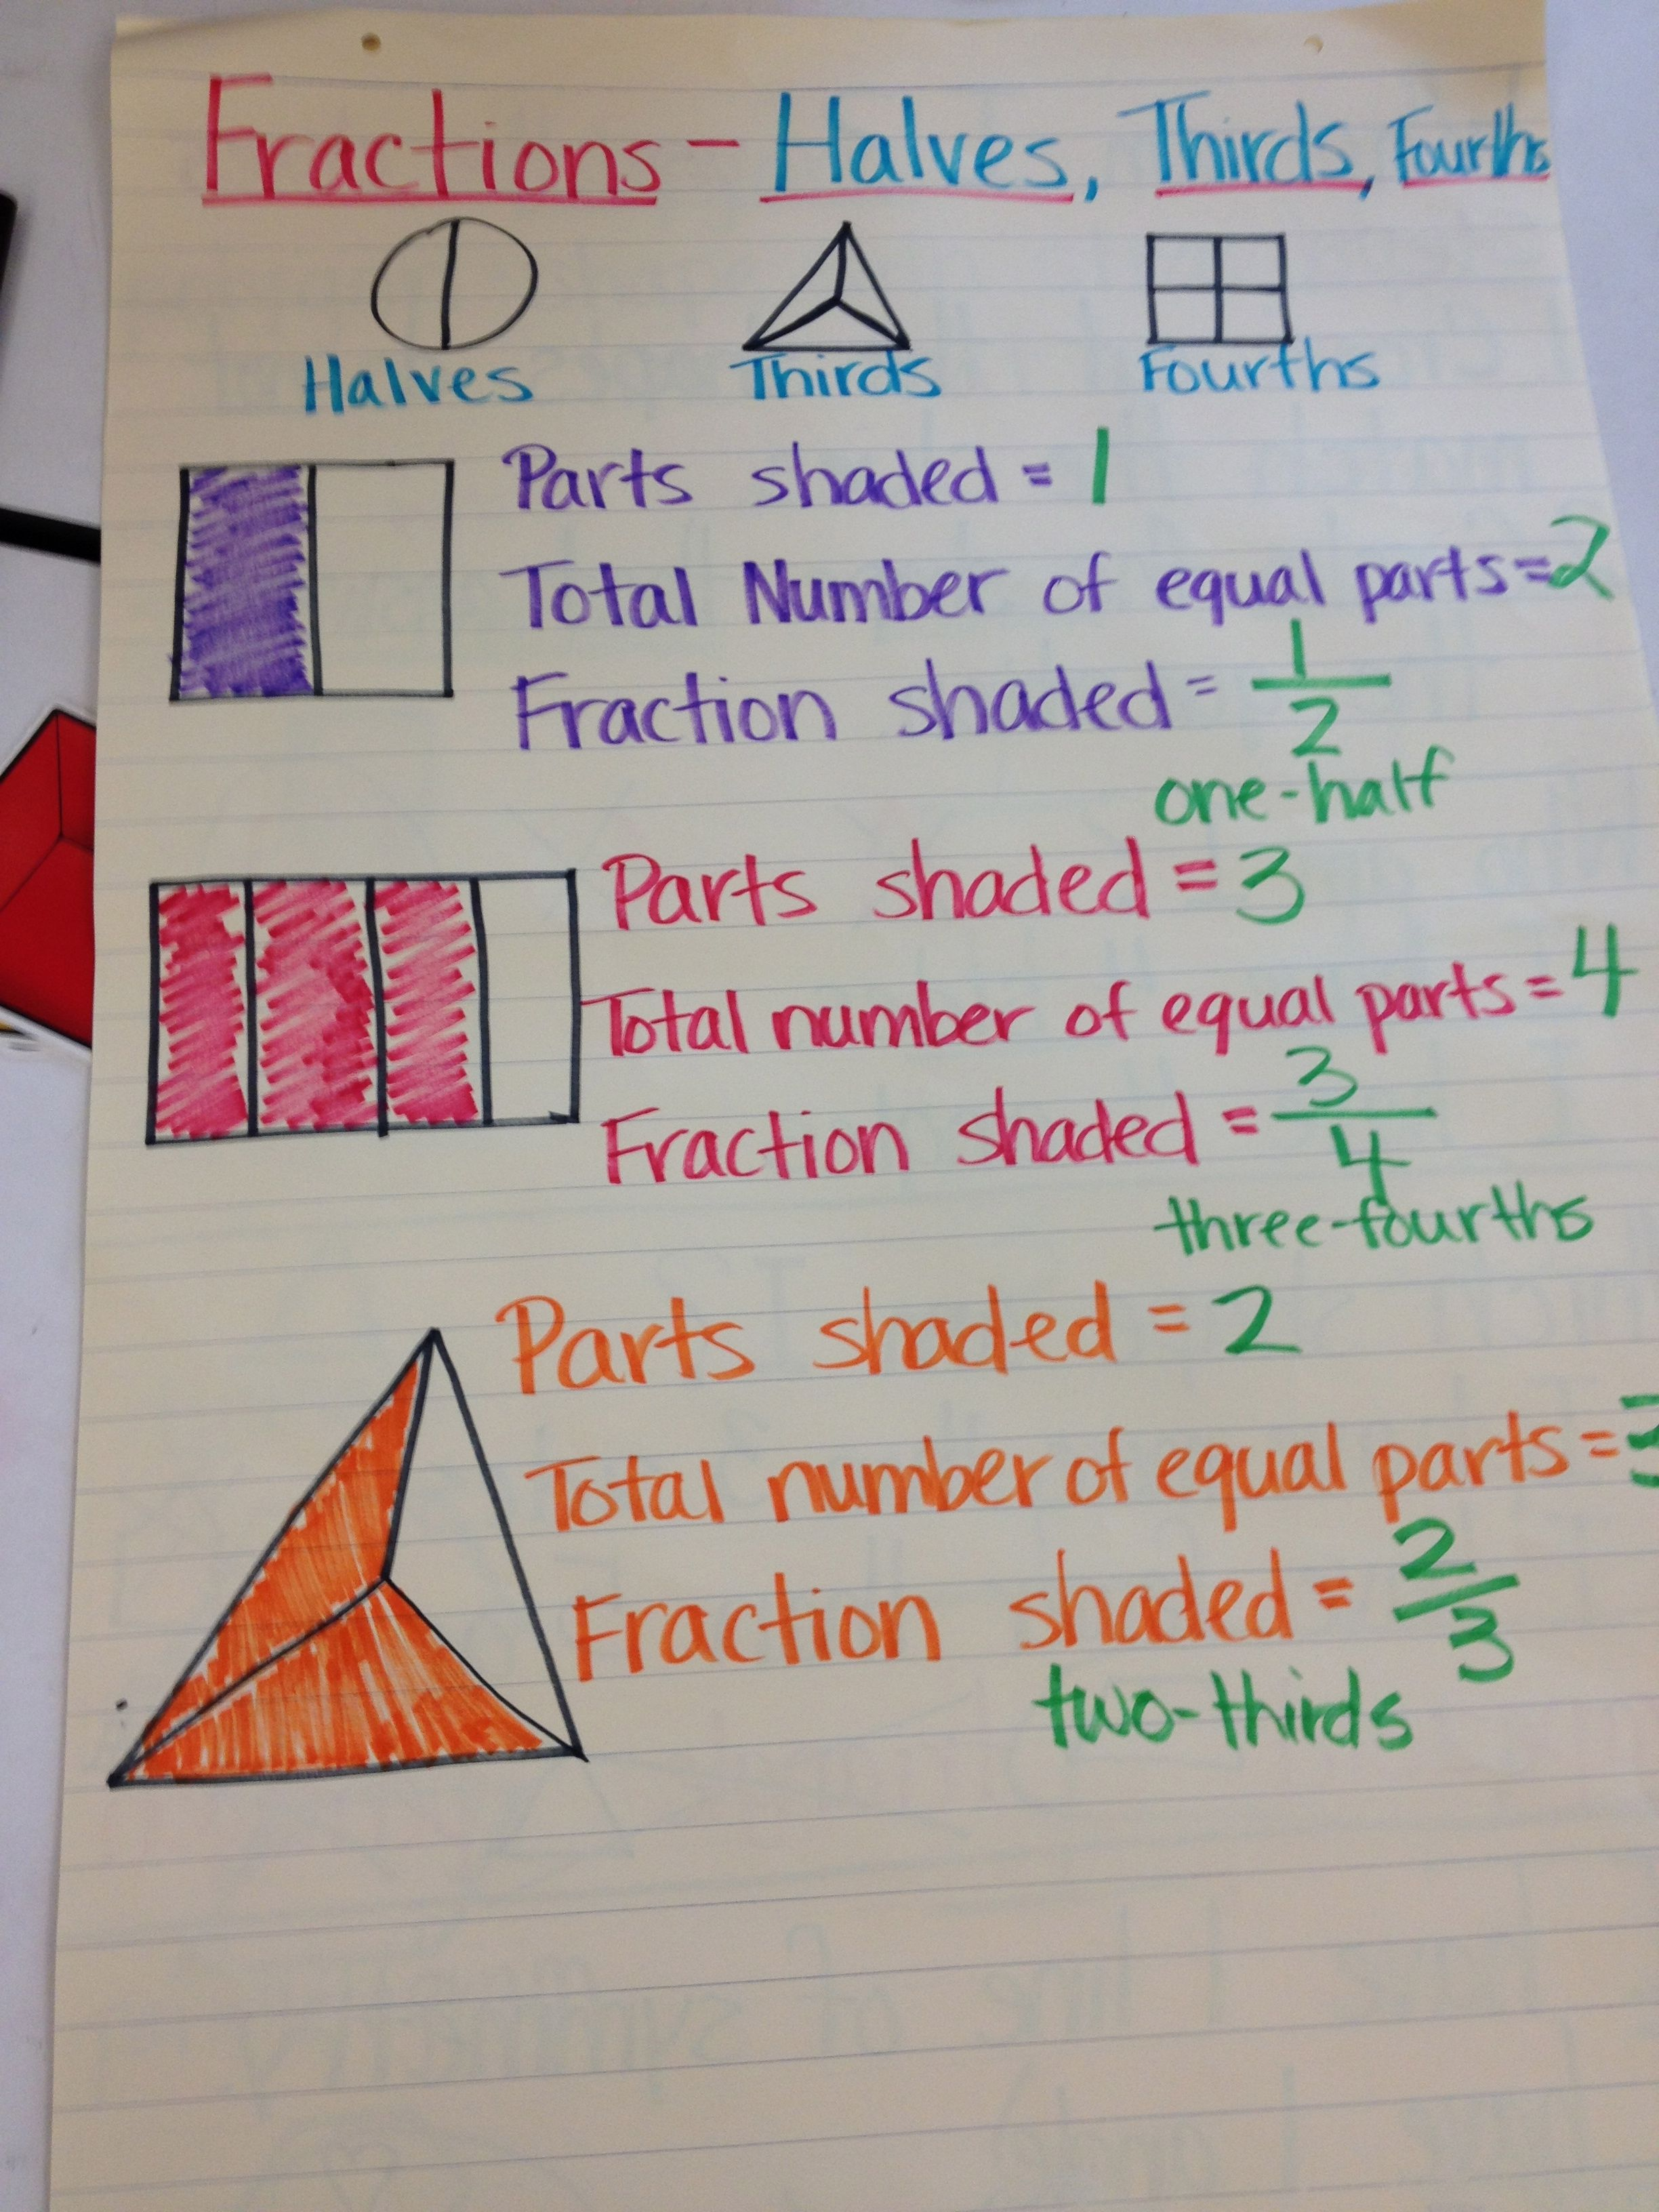 Equal Parts Fraction Worksheet   Printable Worksheets and Activities for  Teachers [ 3264 x 2448 Pixel ]